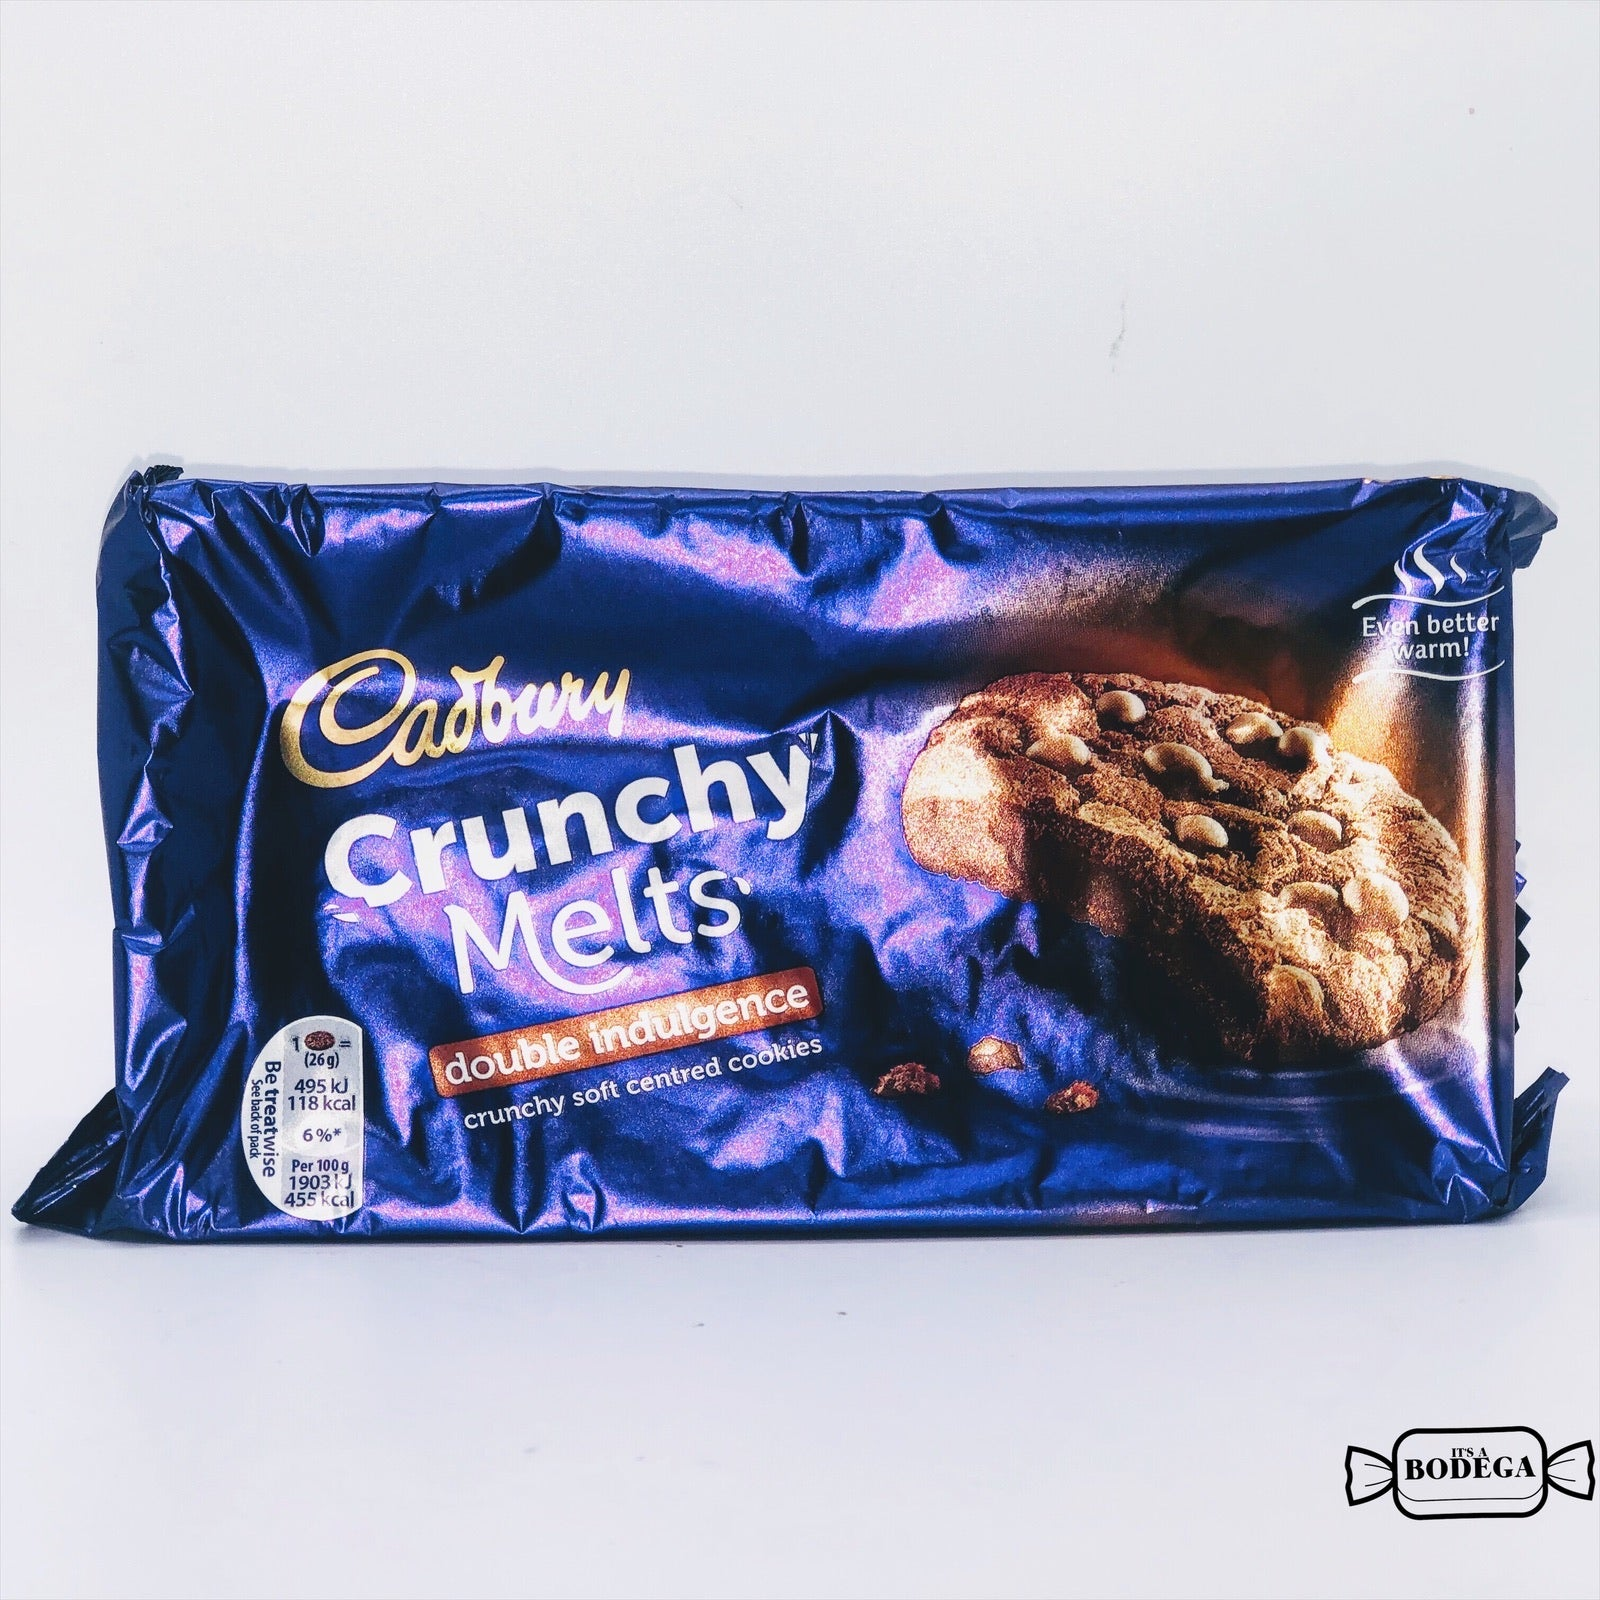 Cadbury Crunchy Melts Double Indulgence Chocolate Chip Cookies